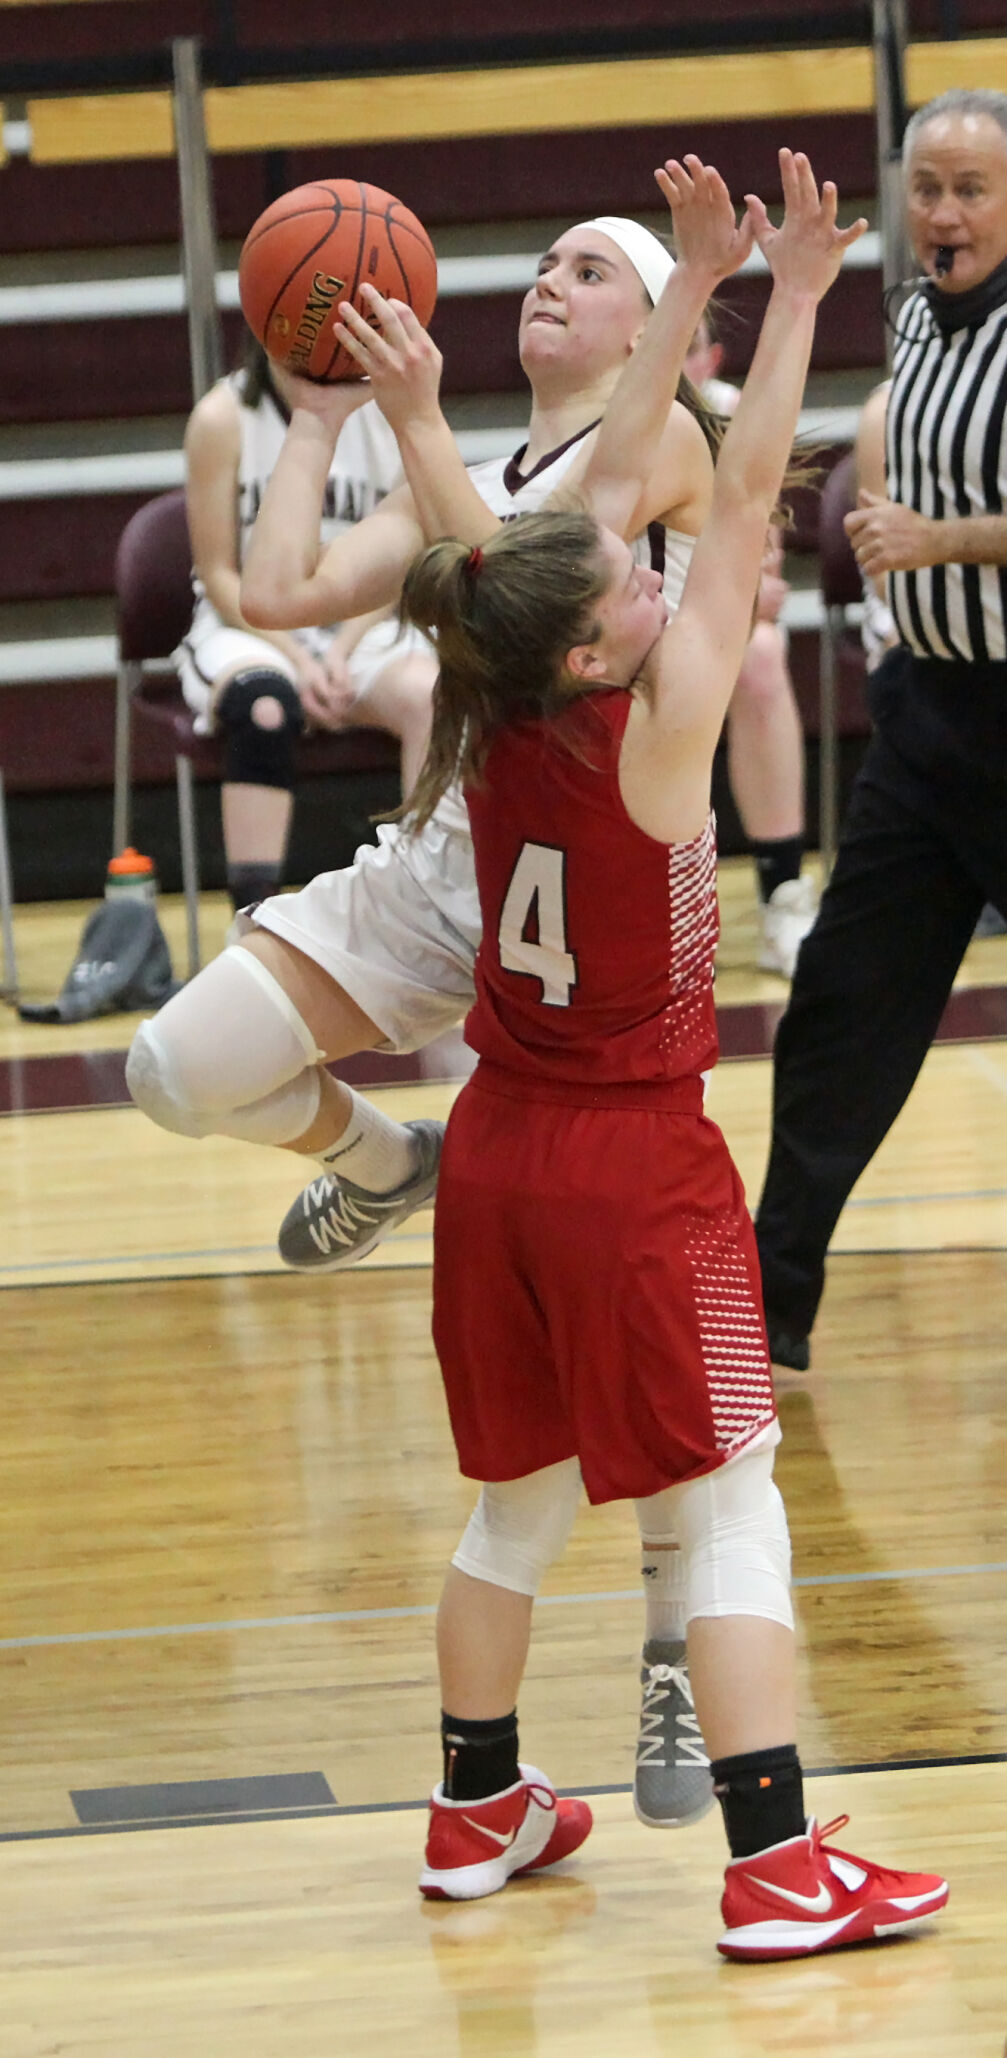 Third-seeded Lady Raiders defeat No. 4-seeded Sedan